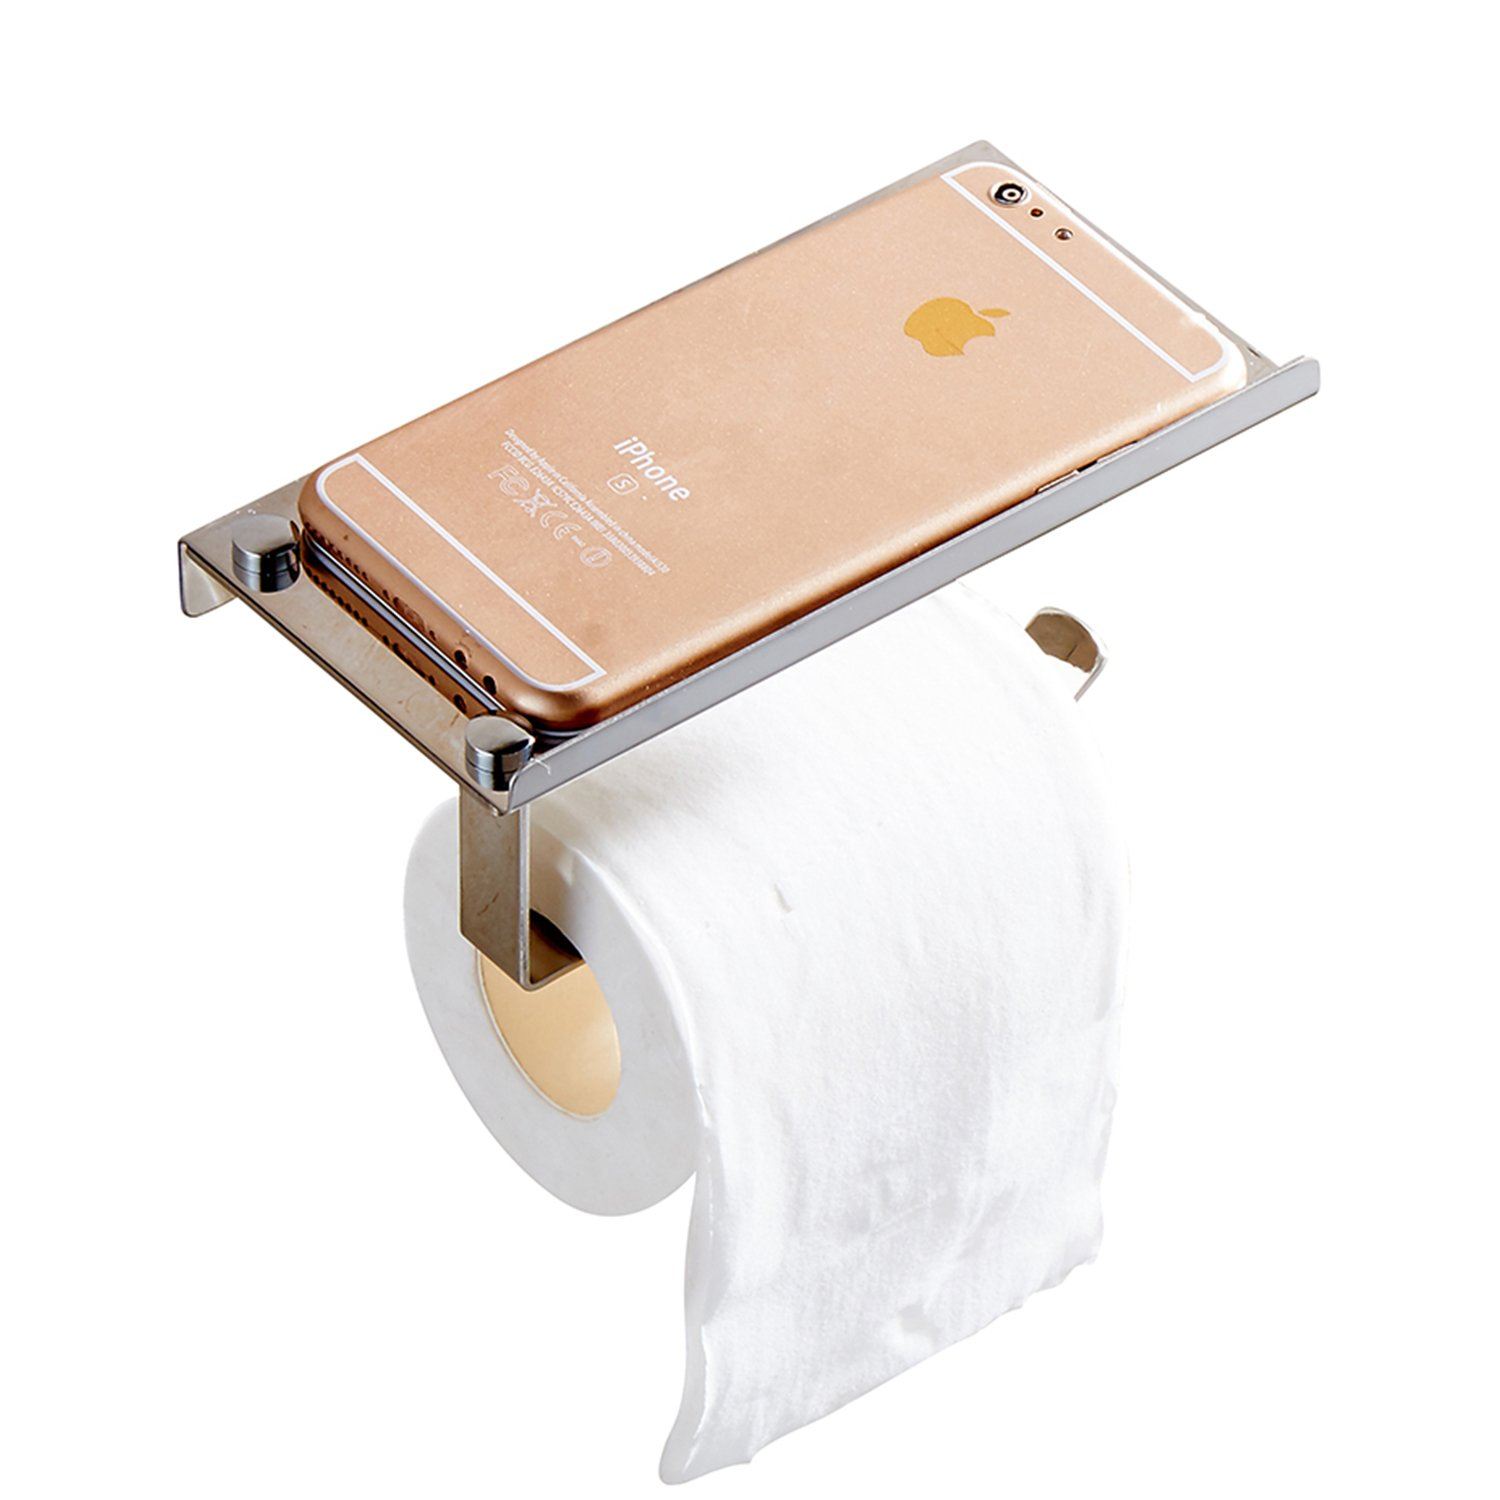 Cavoli Toilet Paper Holder,Wall Mounted,Stainless Steel Roll Holder with Storage Shelf for Mobile Phone,Brushed